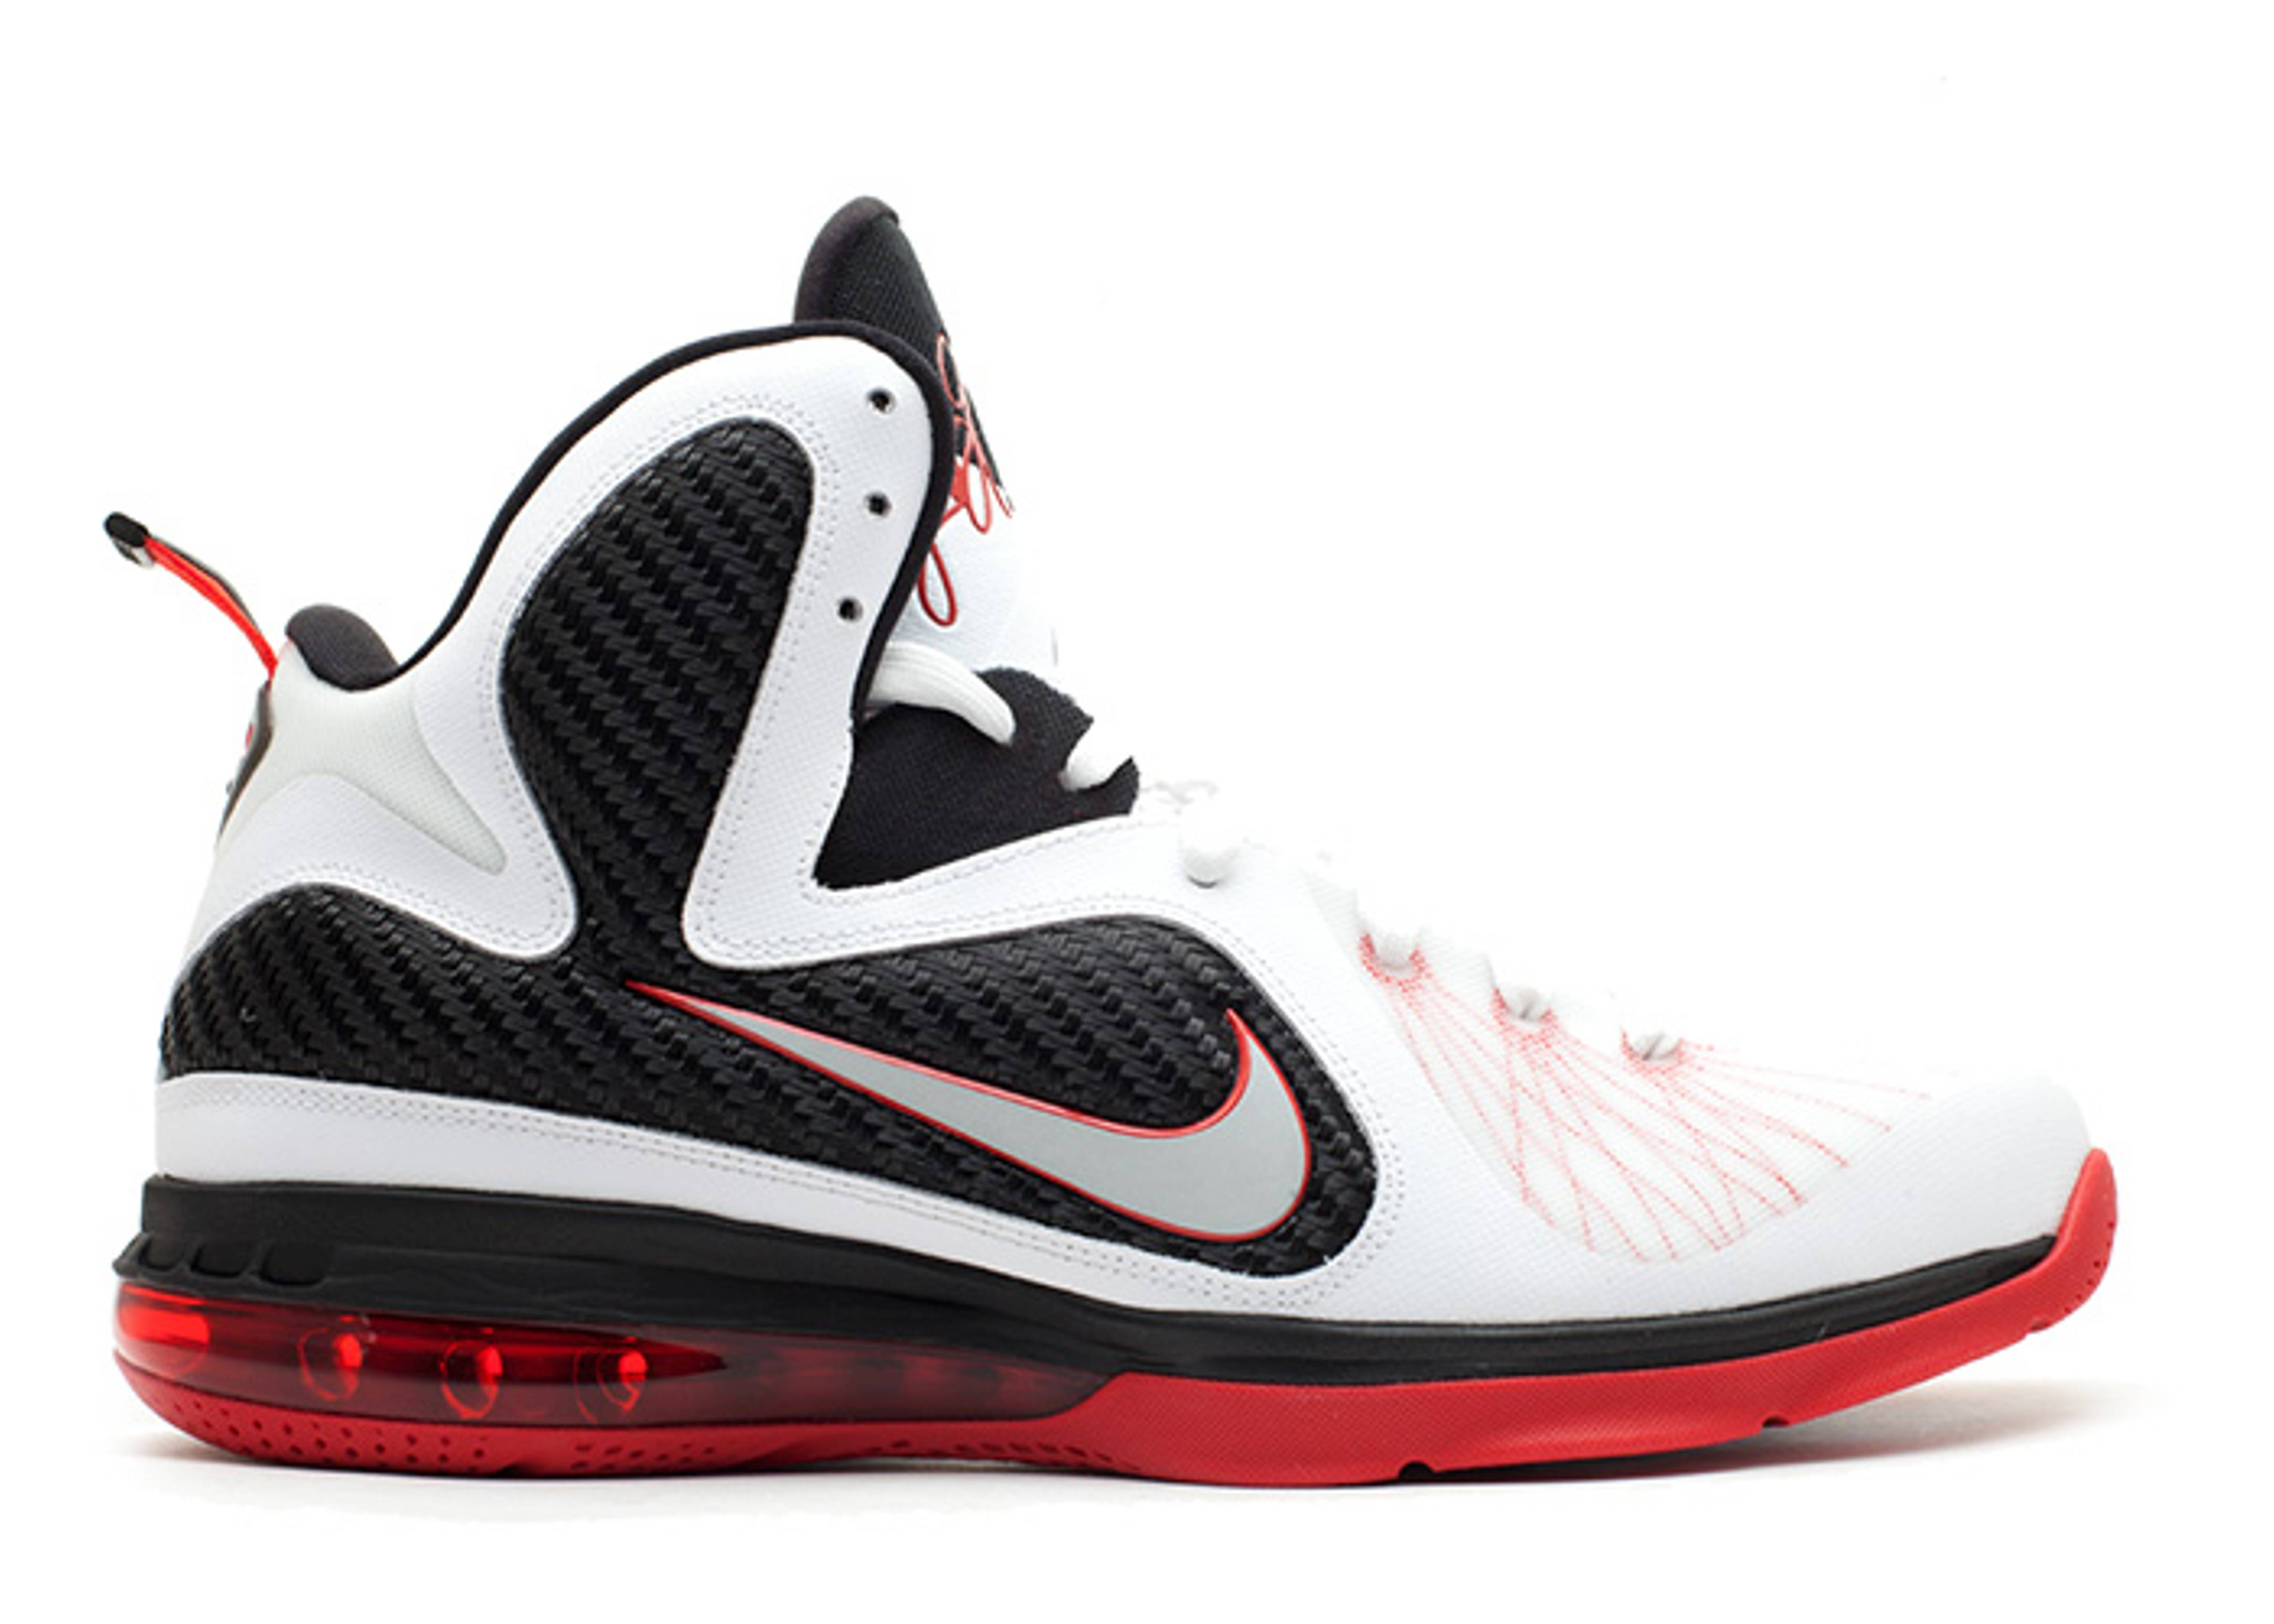 detailed pictures 70622 6de2b Lebron 9